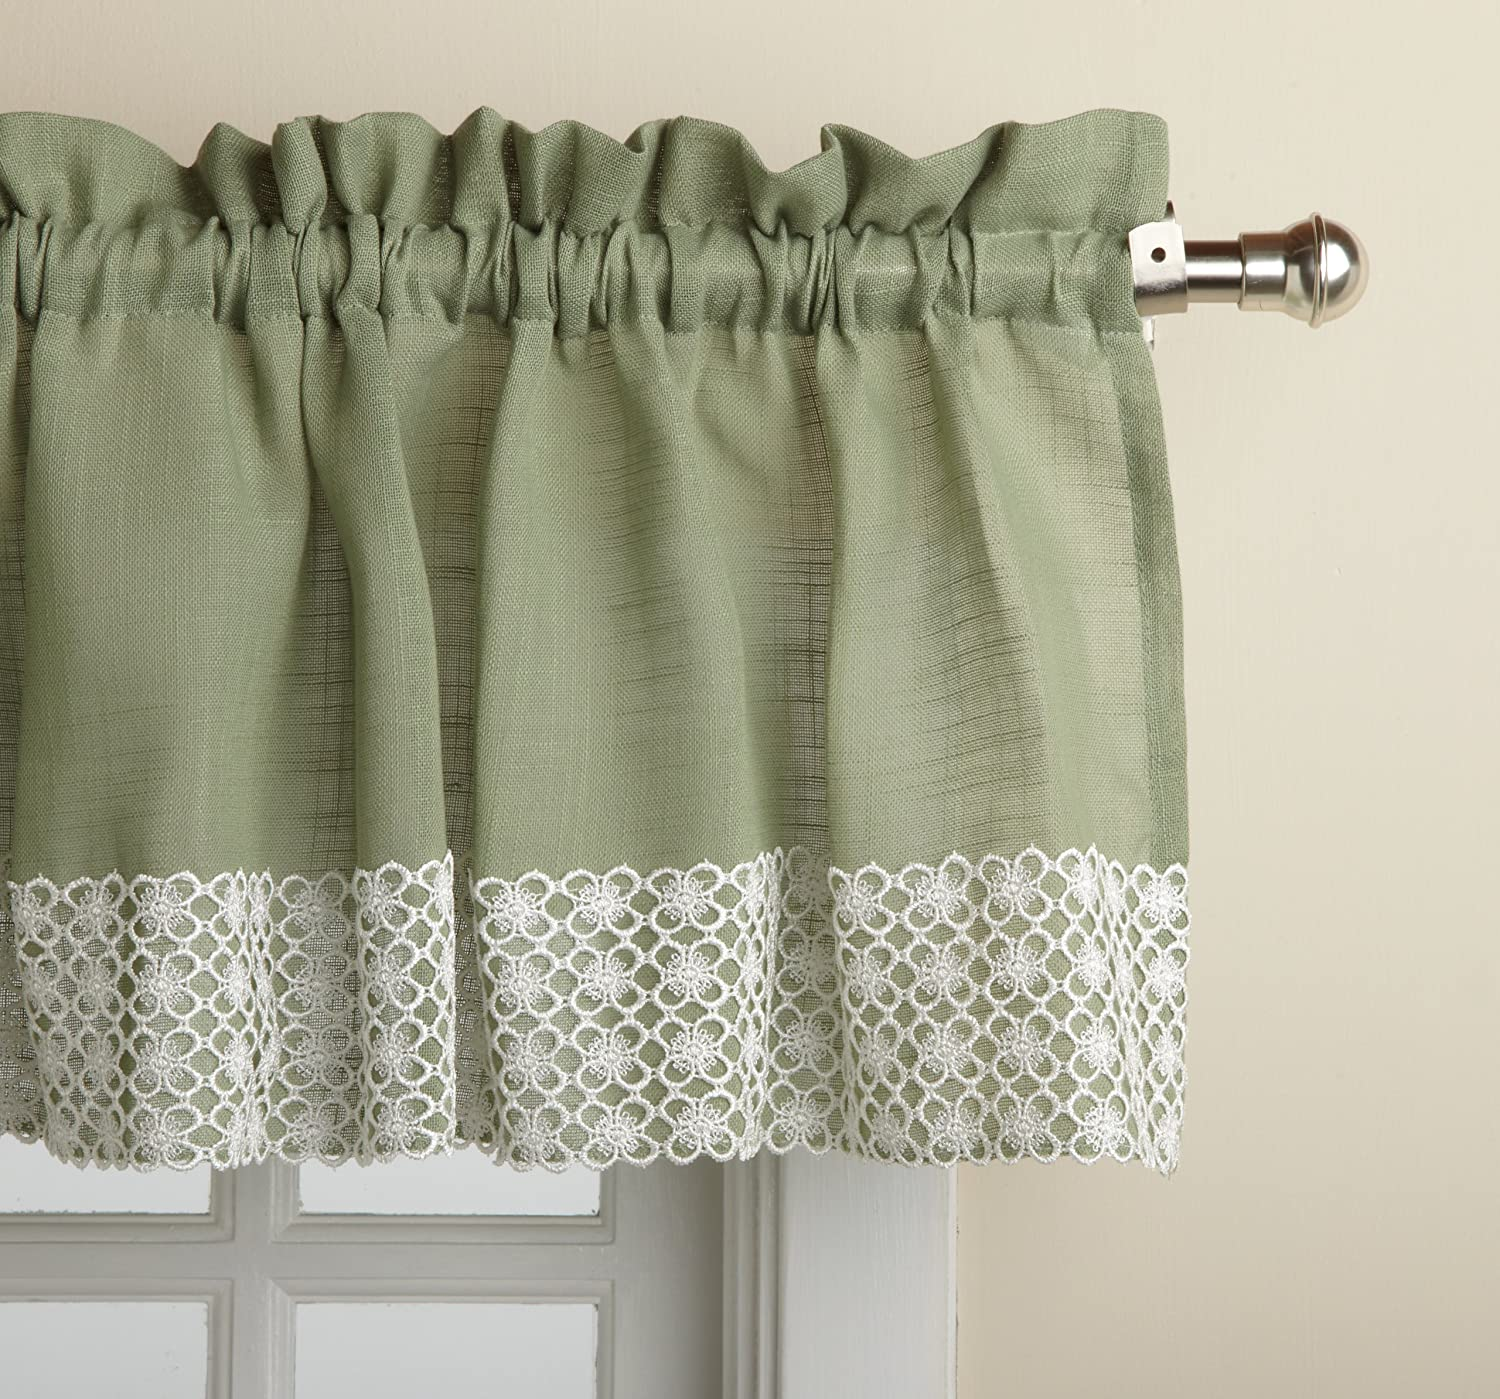 Lorraine Home Fashions Salem 60-inch x 12-inch Tailored Valance, Sage